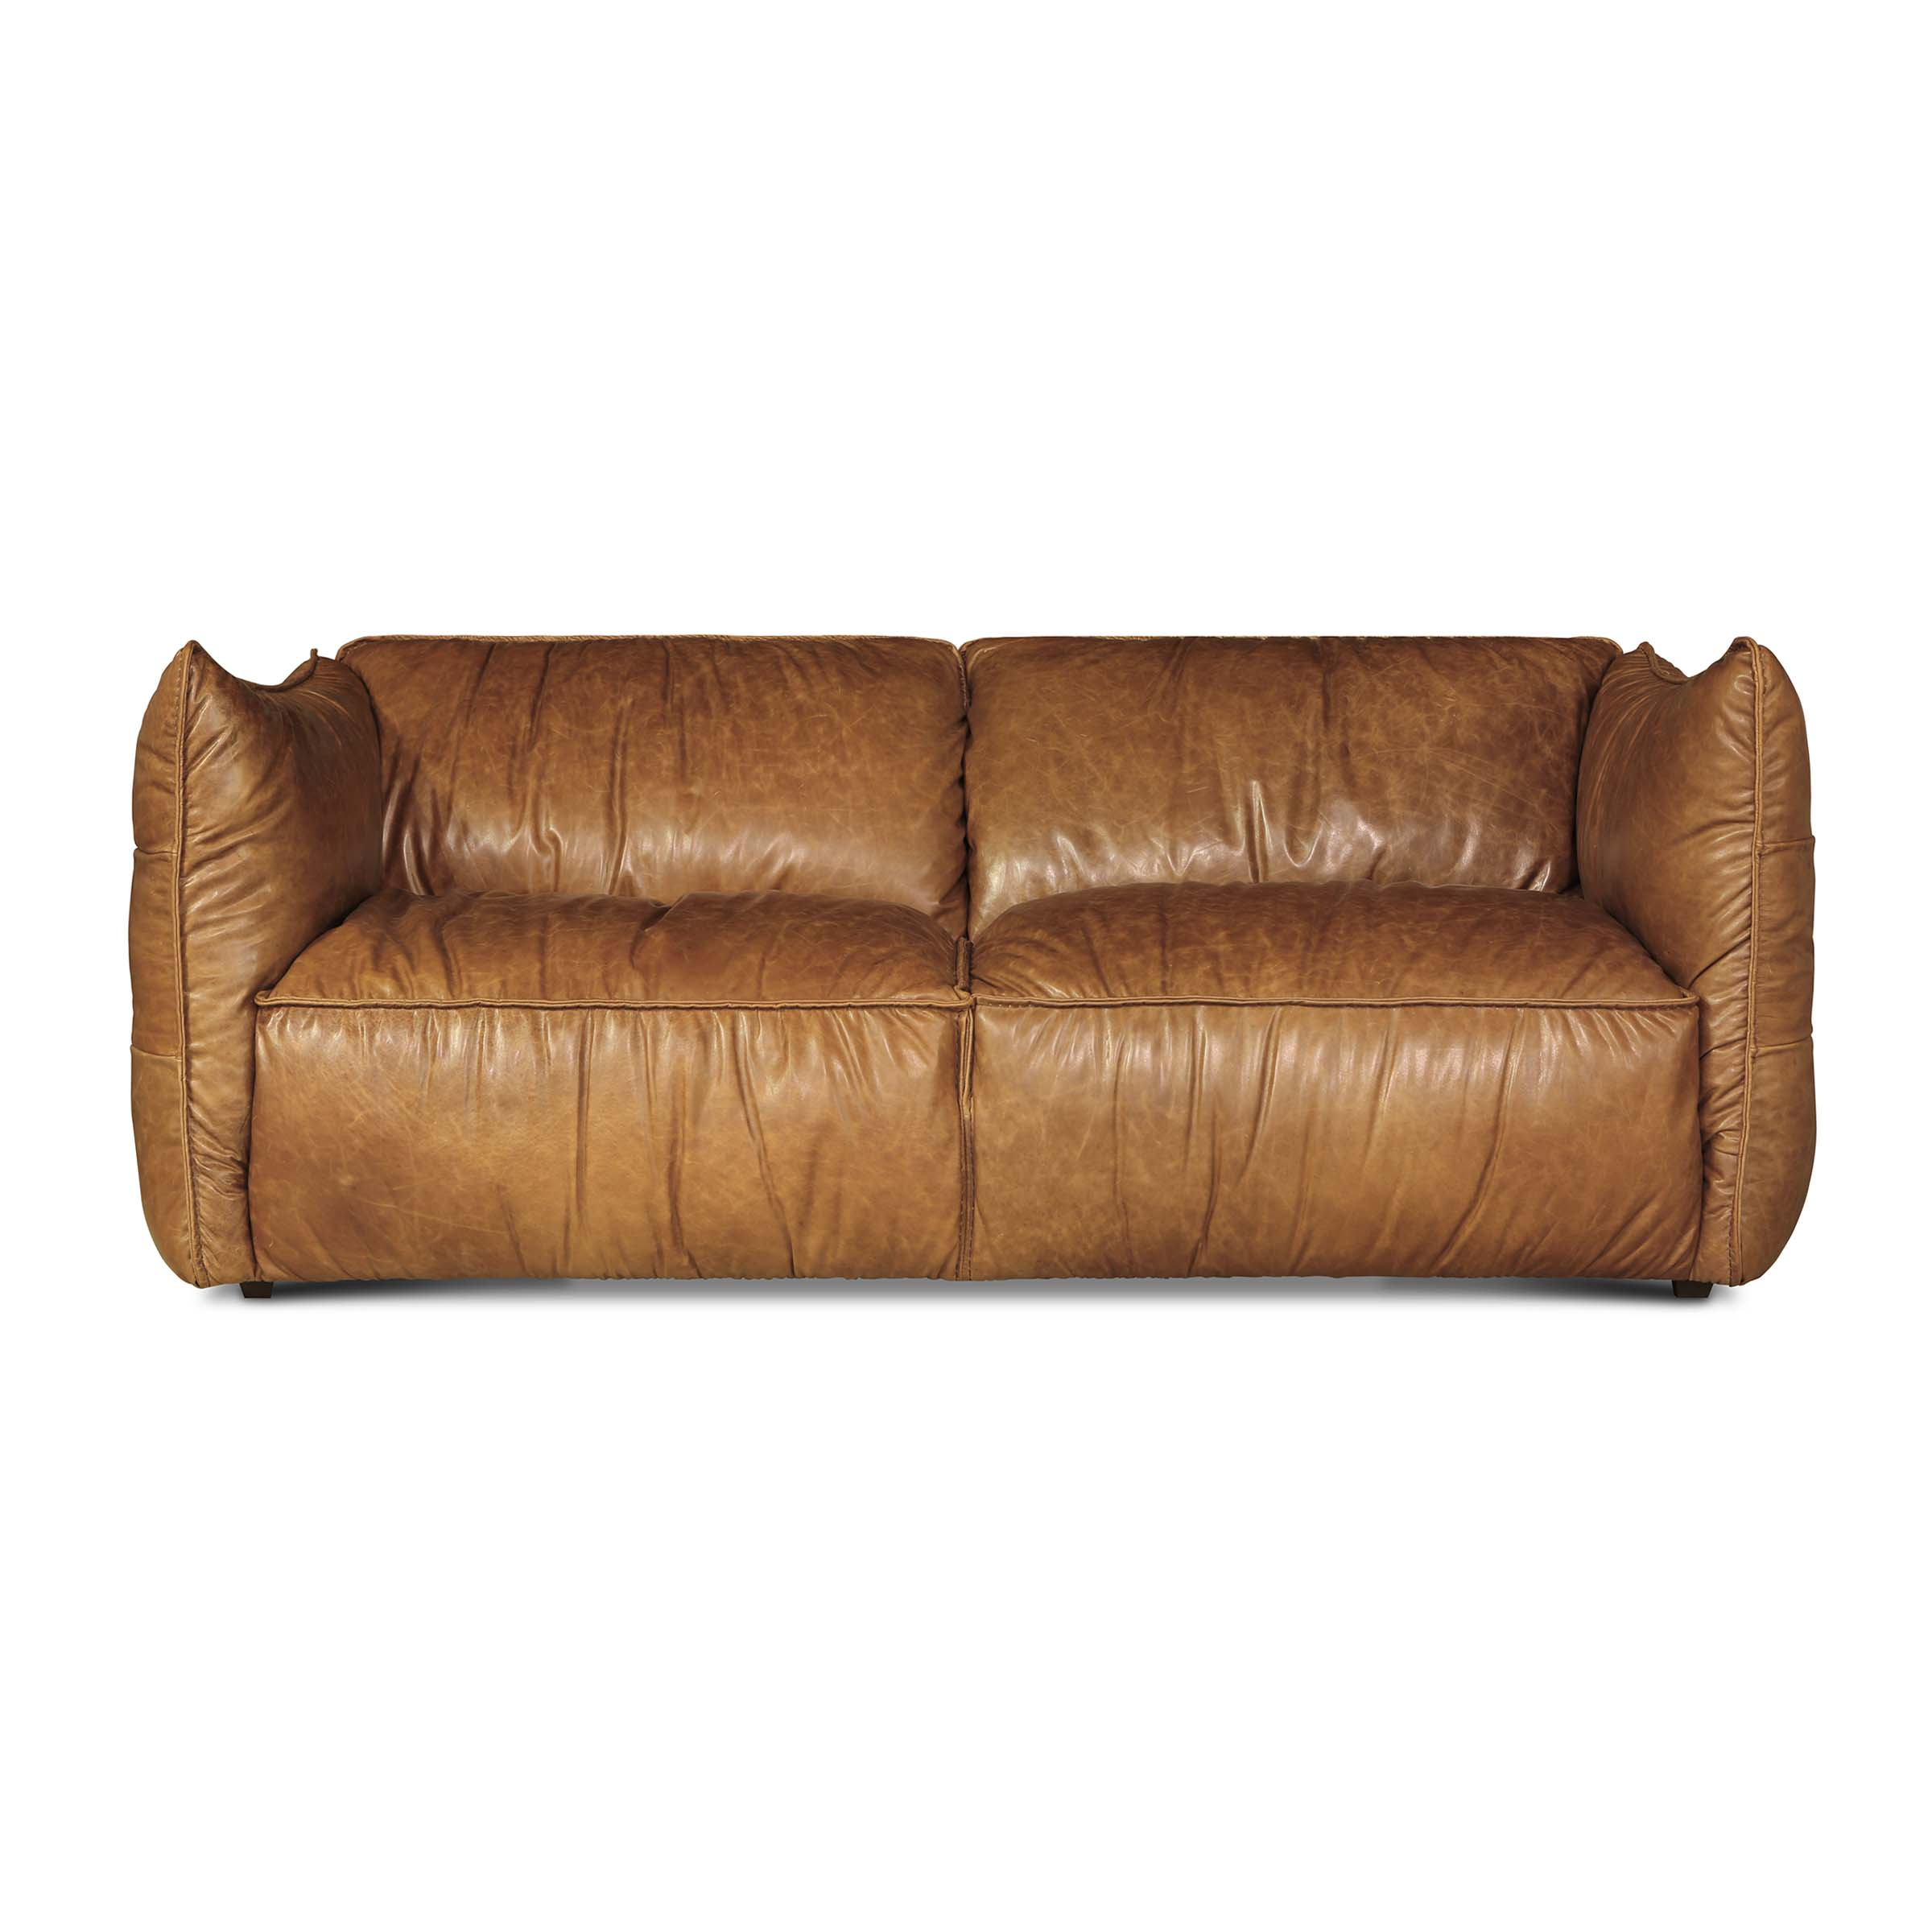 RODDY - 30 Sofa Equestrian Tan